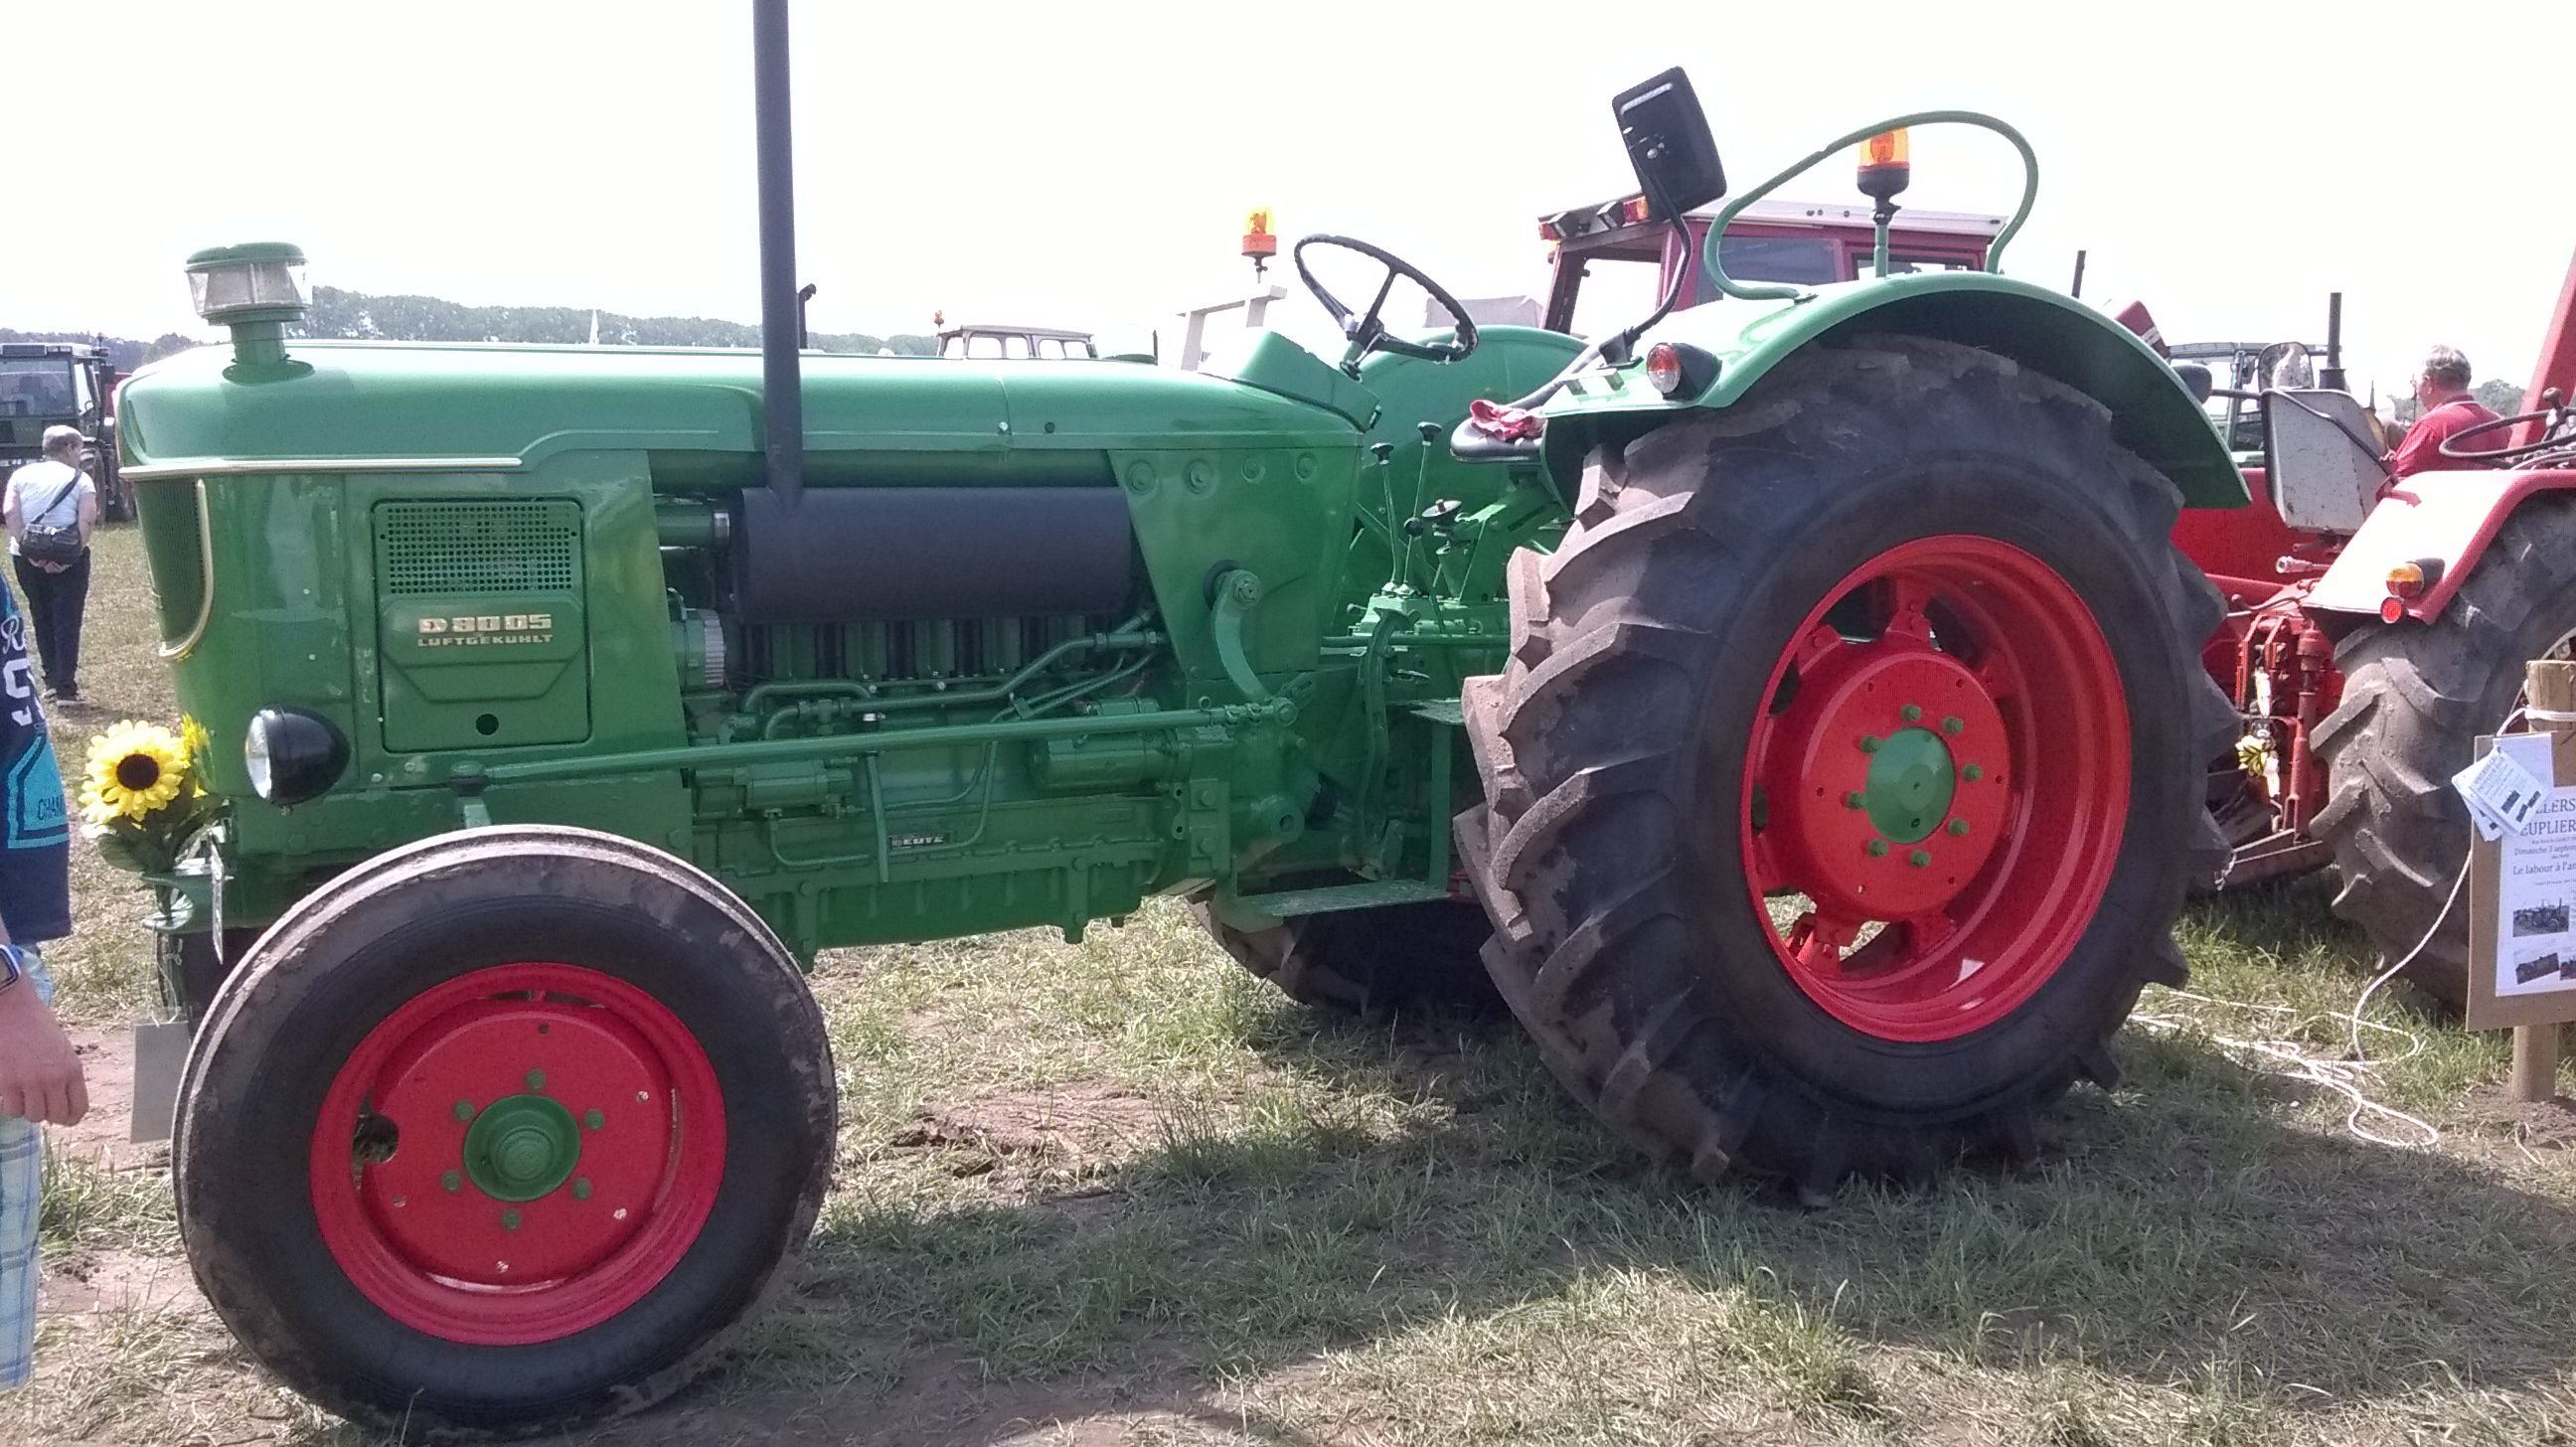 Deutz 8005 Farming, Cars And Motorcycles, Tractors, Tractor Pulling